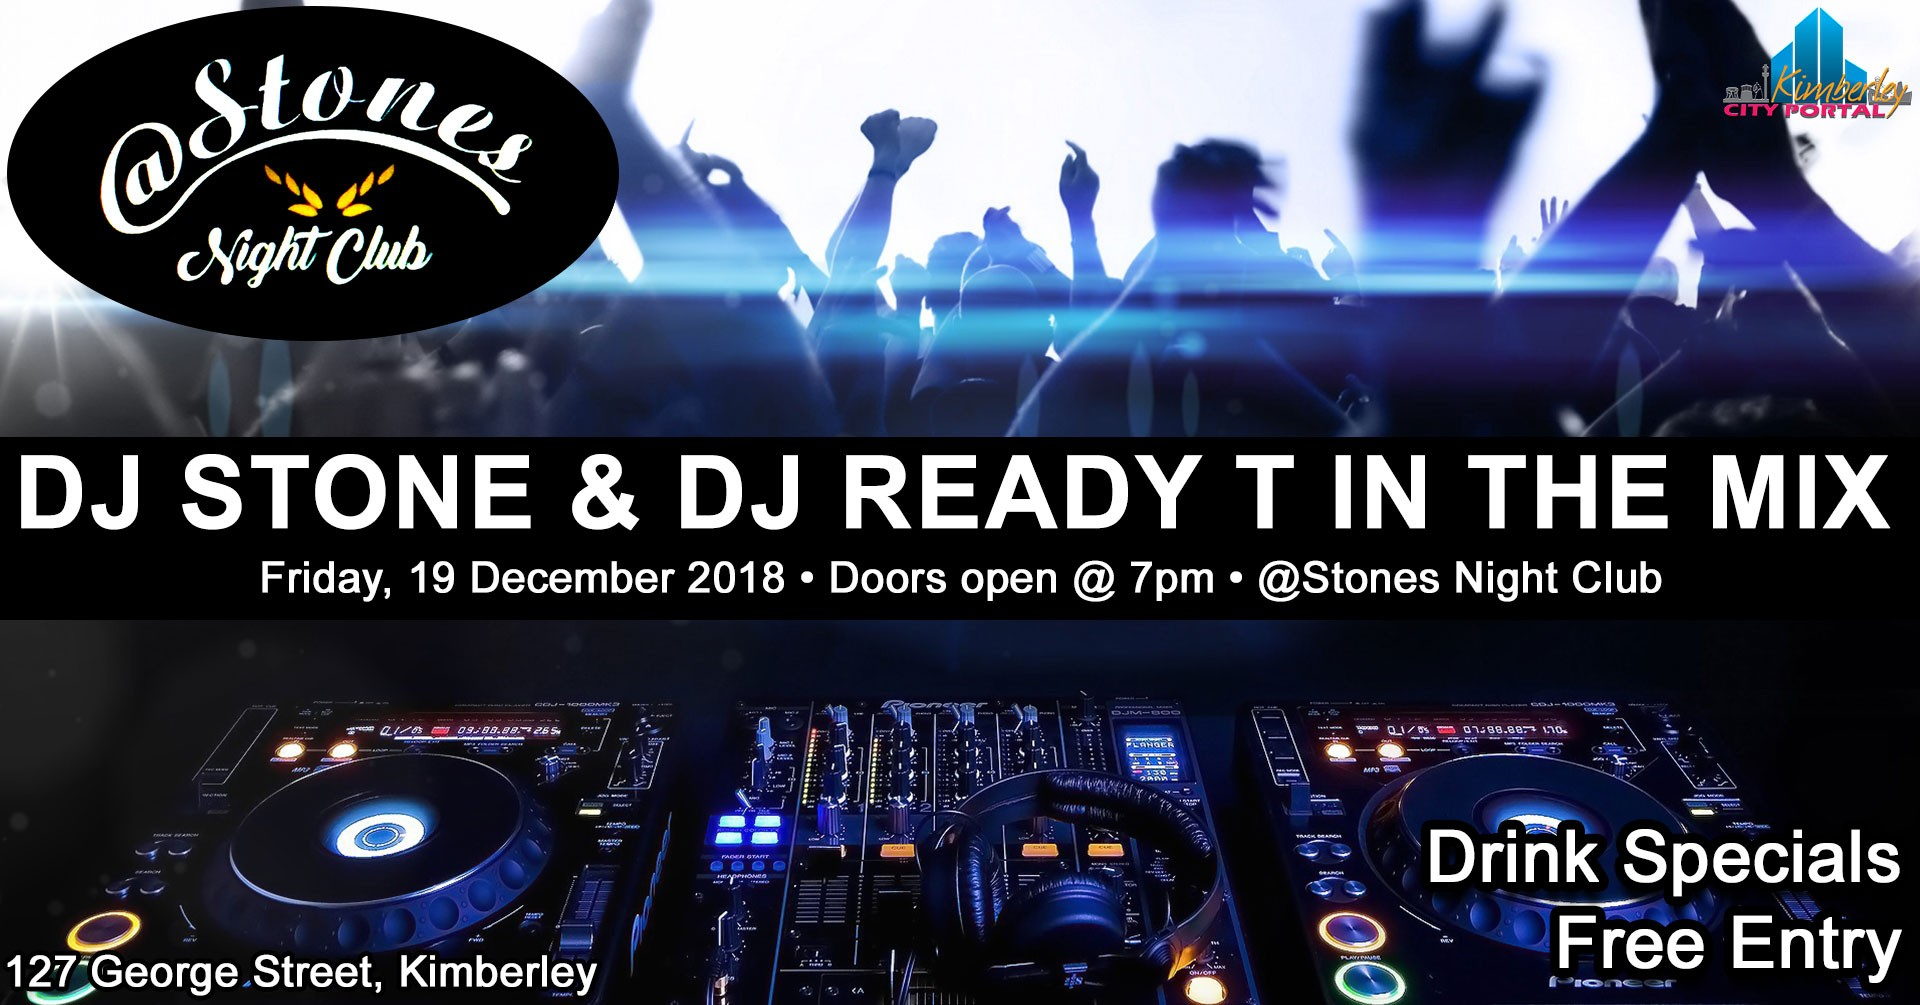 DJ Stone & DJ Ready T in the mix @ Stones Night Club